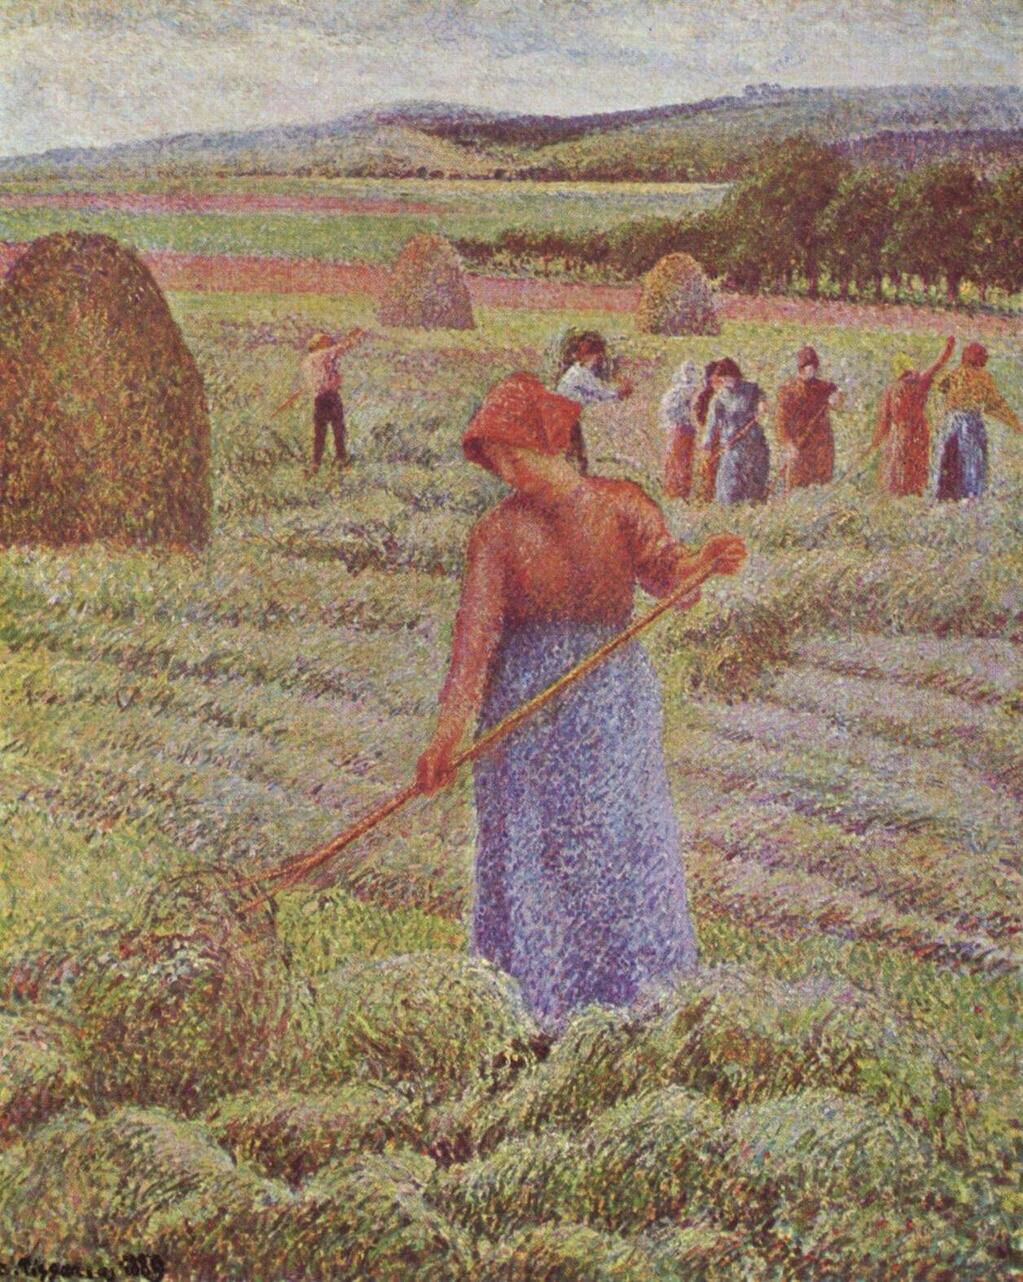 Haying at Eragny - Camille Pissarro